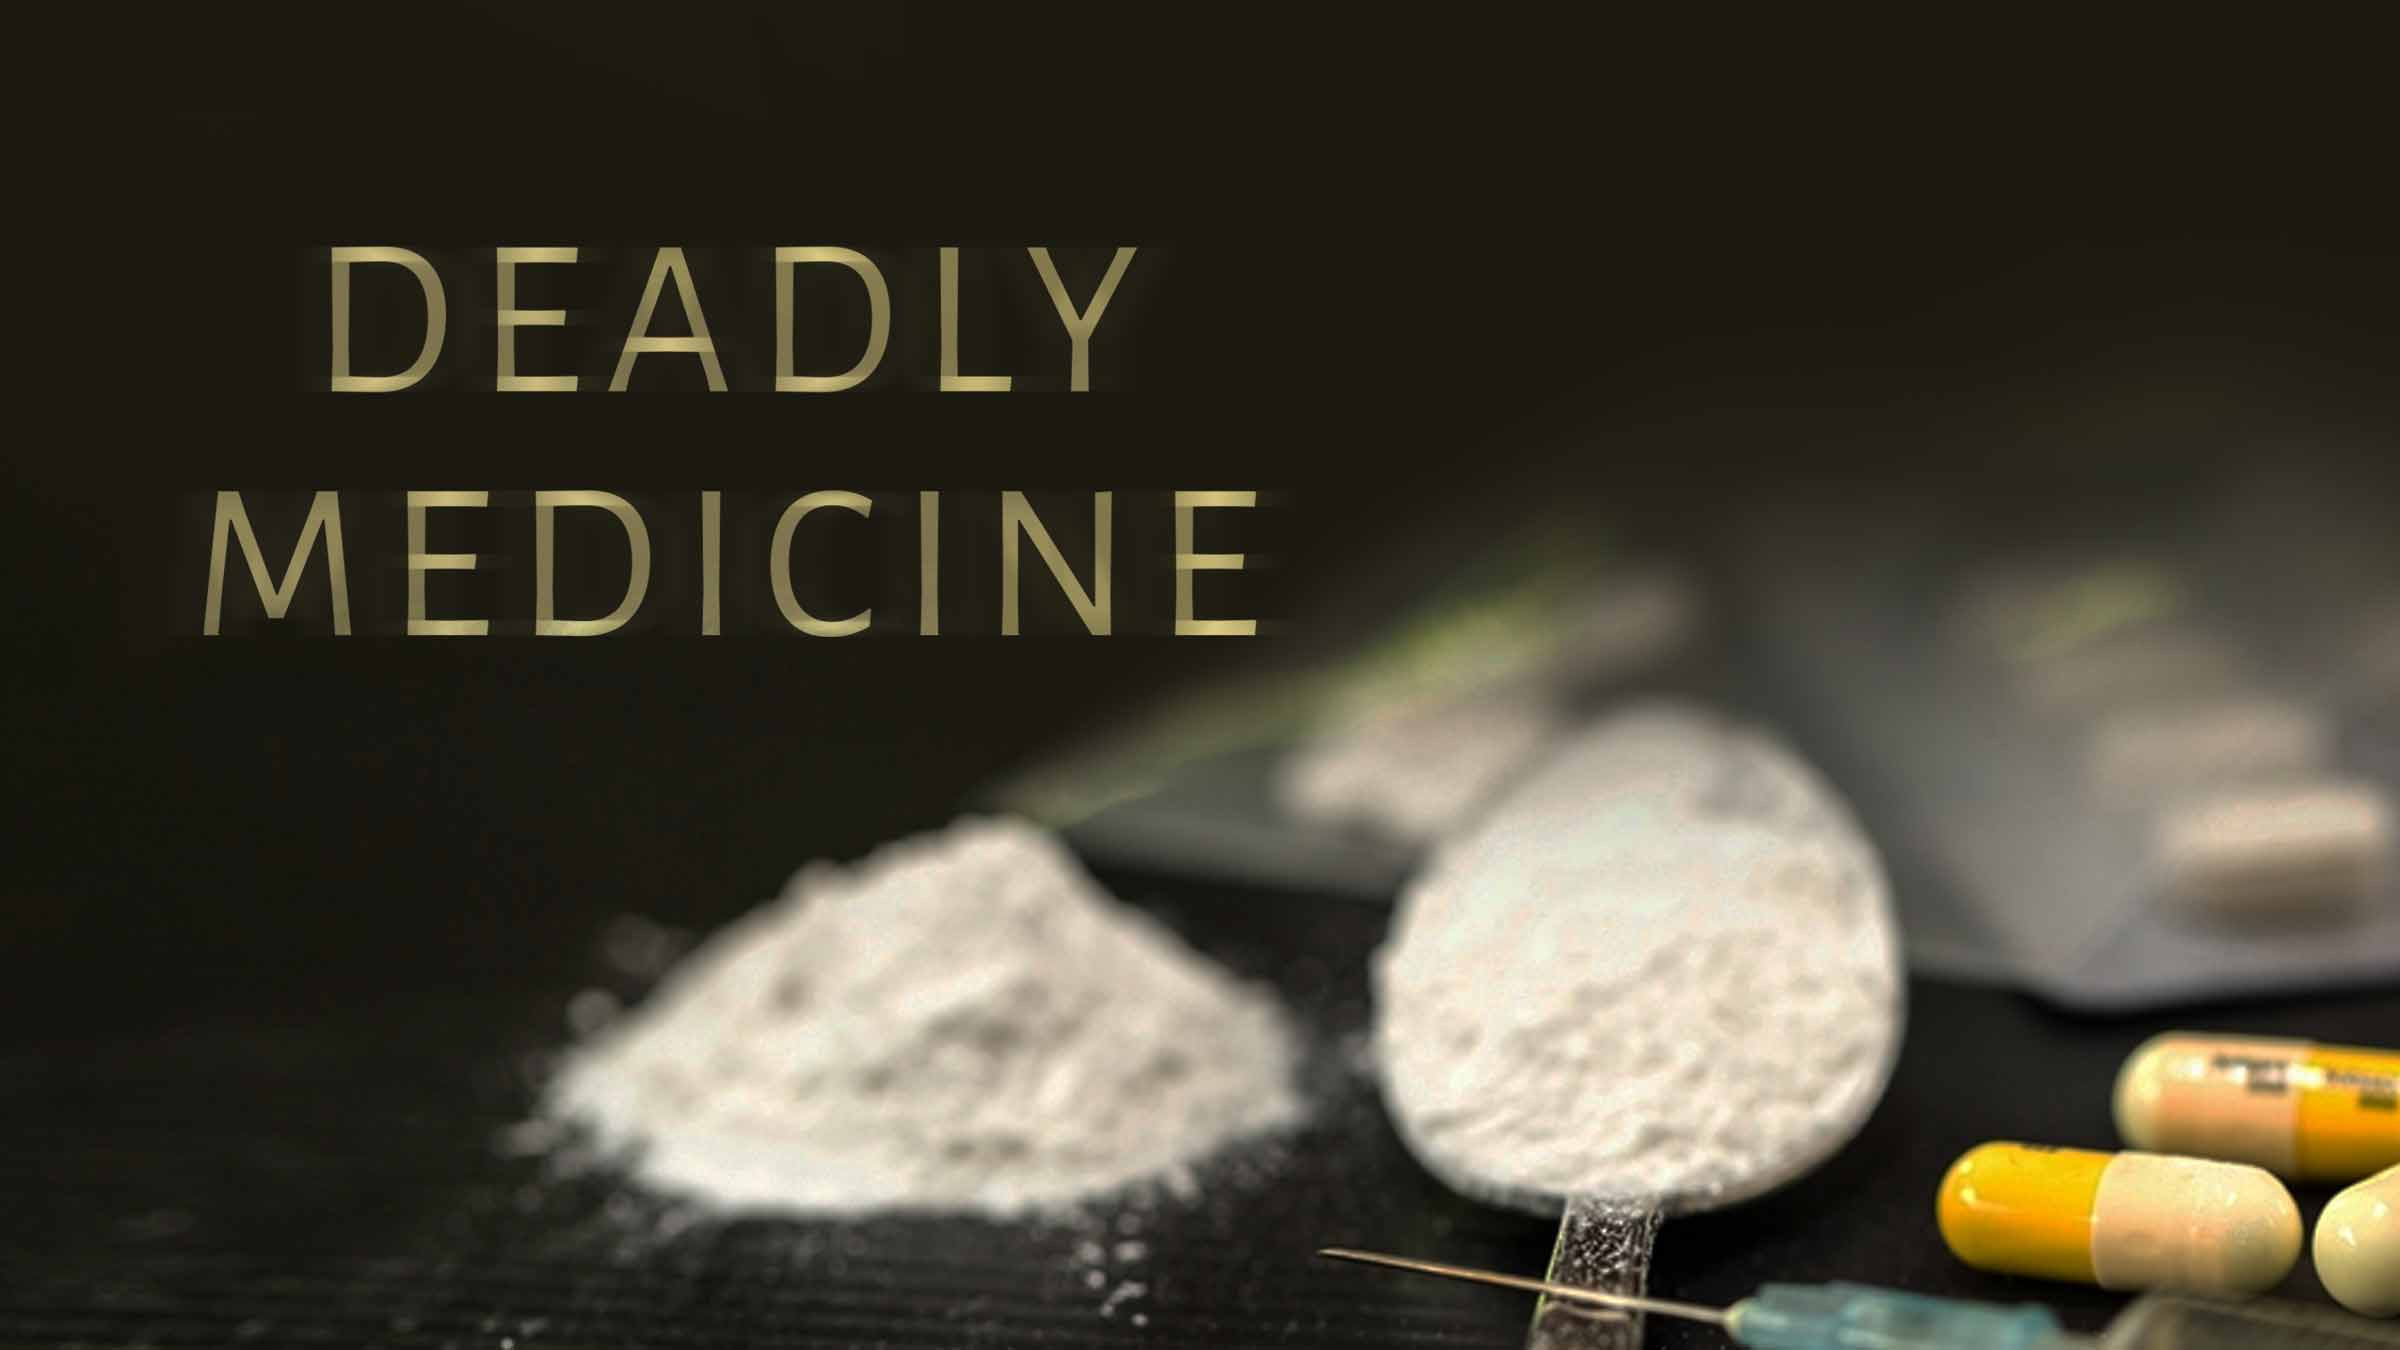 Deadly Medicine (Drugs: Cannabis Country, Heroin Fix, India's addicts)